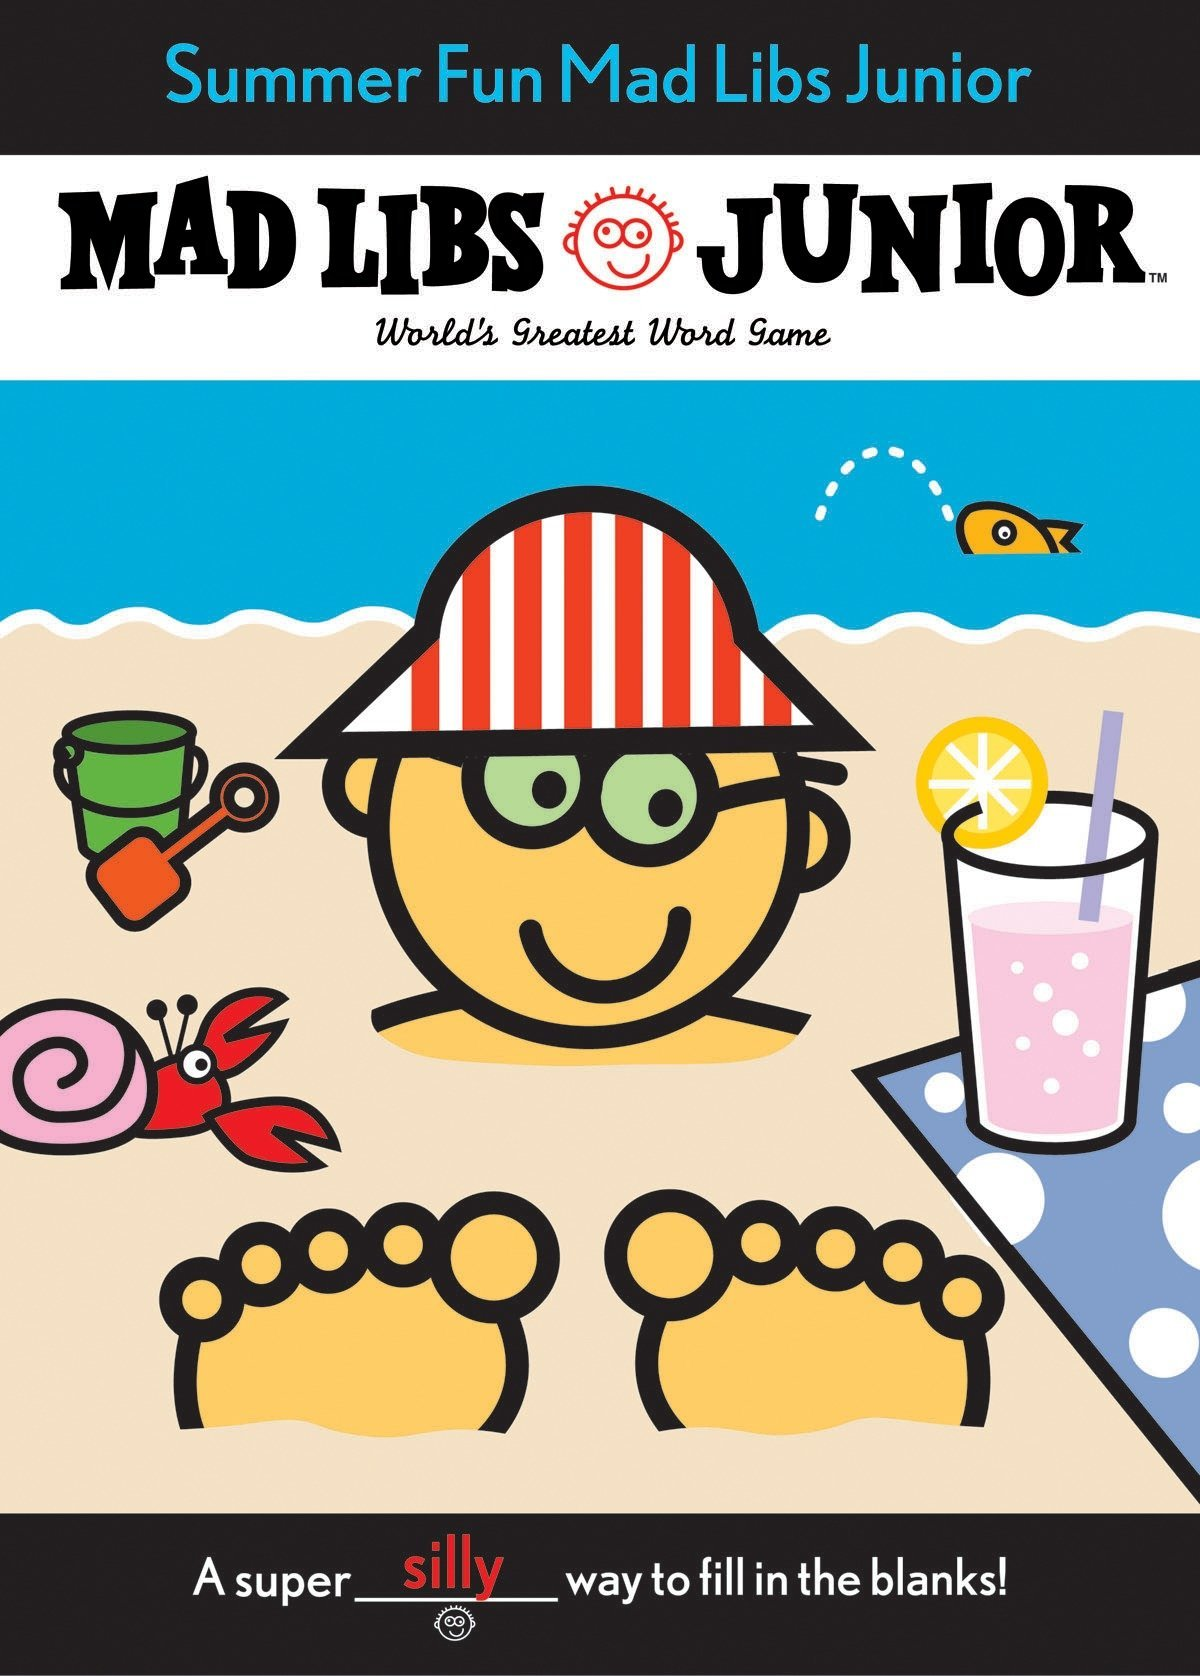 graphic about Summer Mad Libs Printable named Summer months Enjoyment Nuts Libs Junior: Roger Charge: 9780843107593